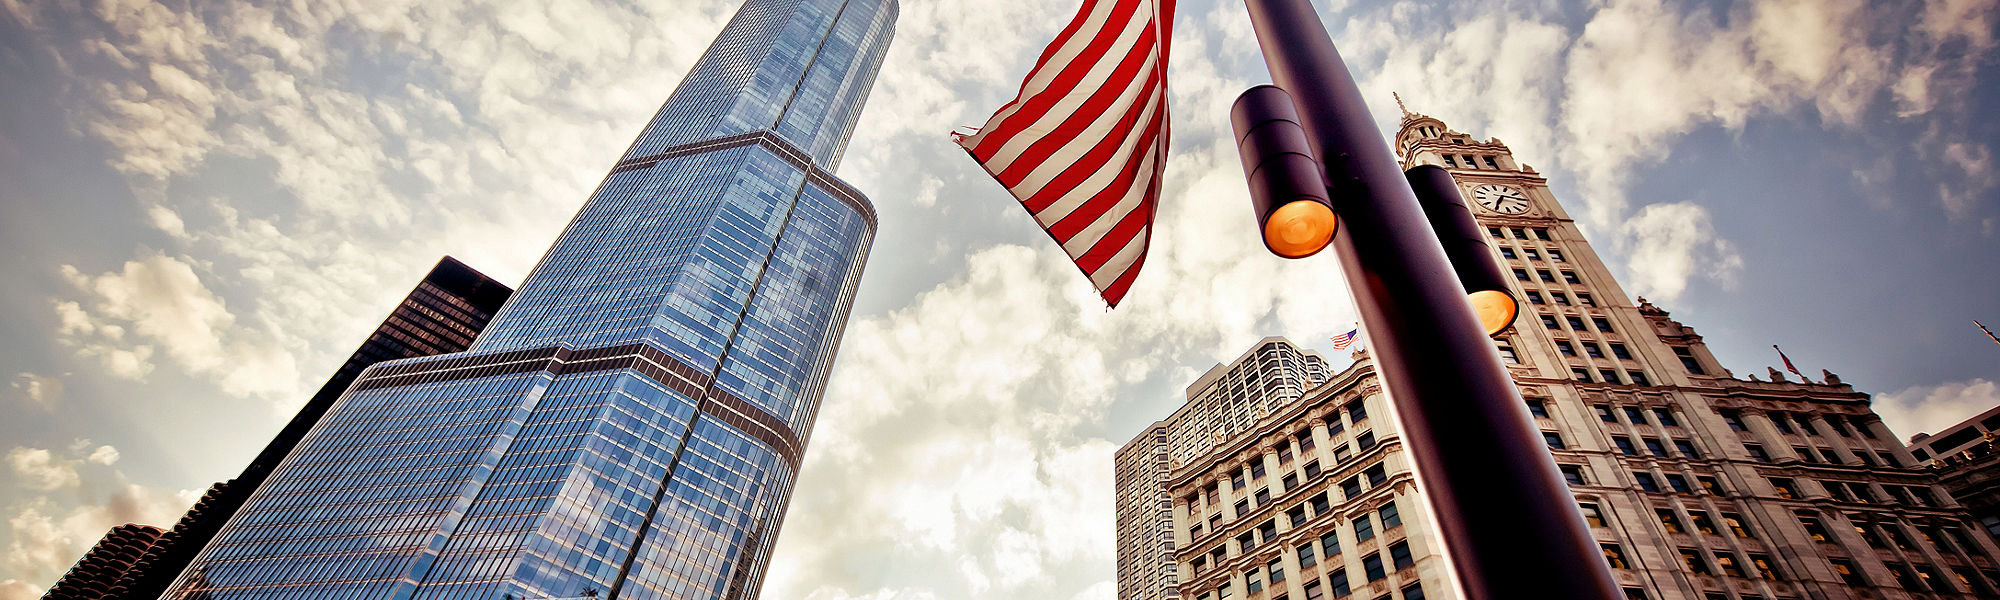 American flag over skyscrapers